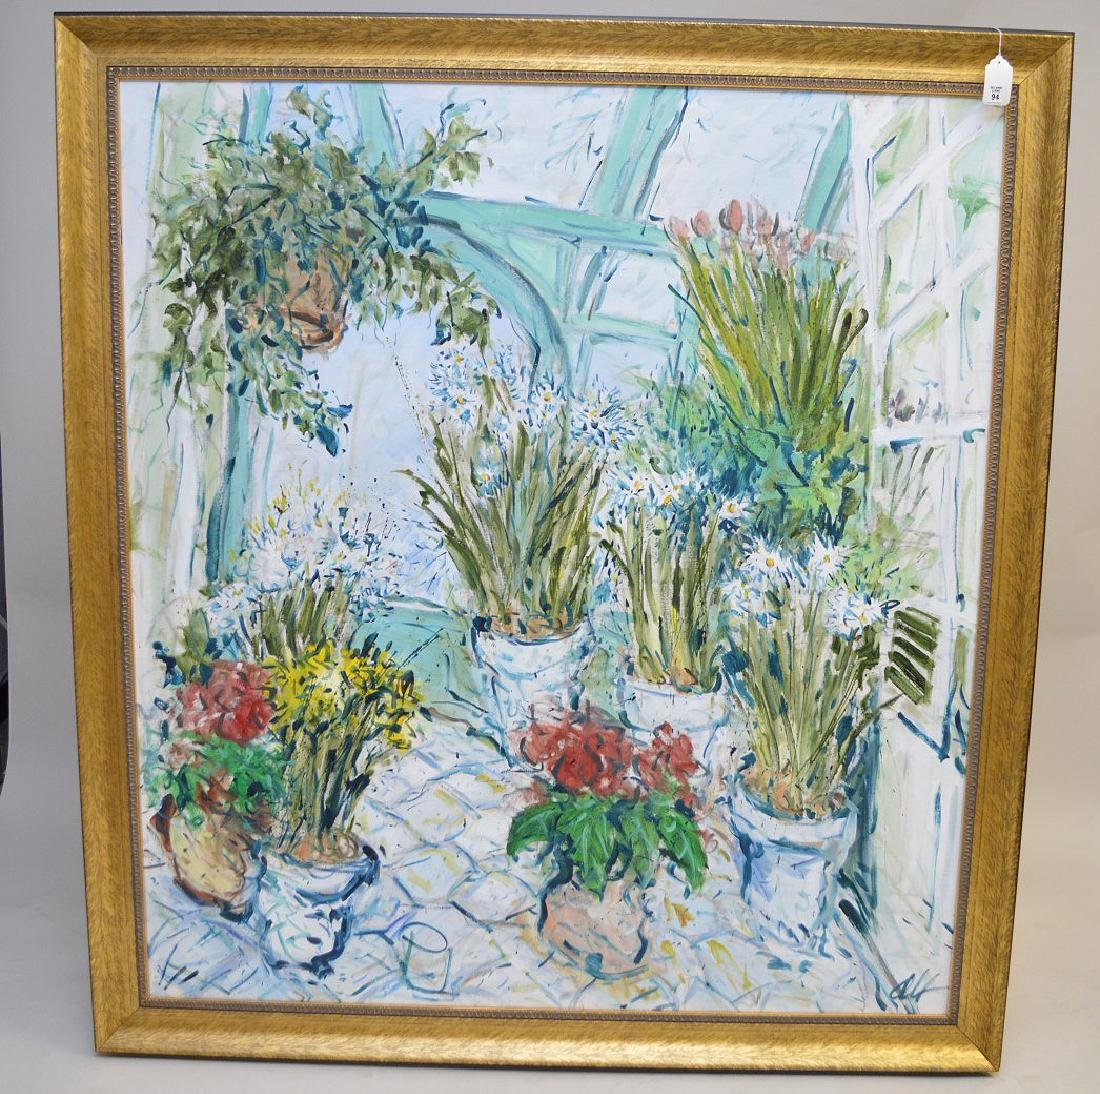 O.Alt, large oil on canvas, Green house plants and